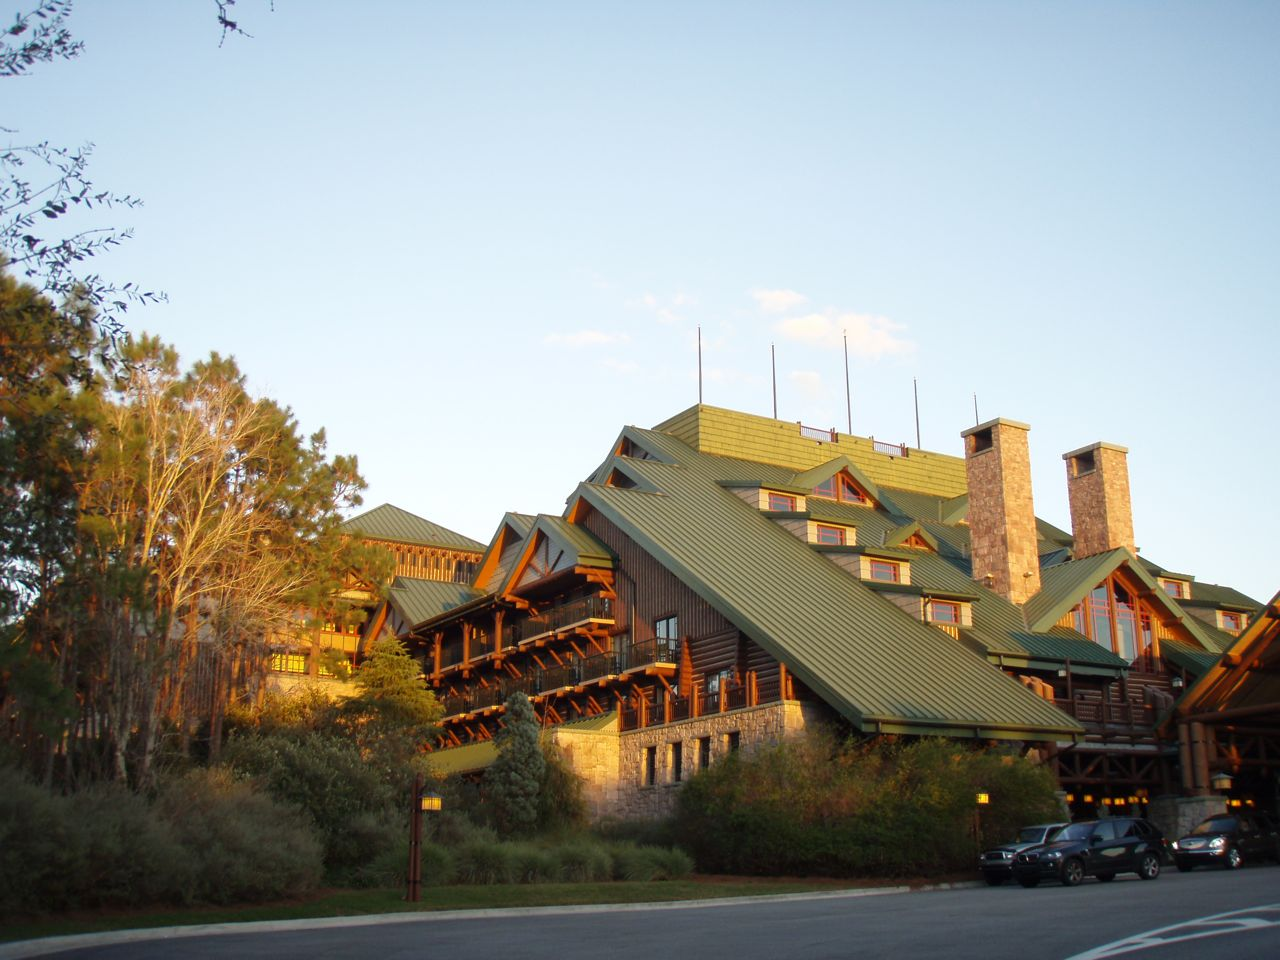 A Look At Disney 39 S Wilderness Lodge Viva Orlando